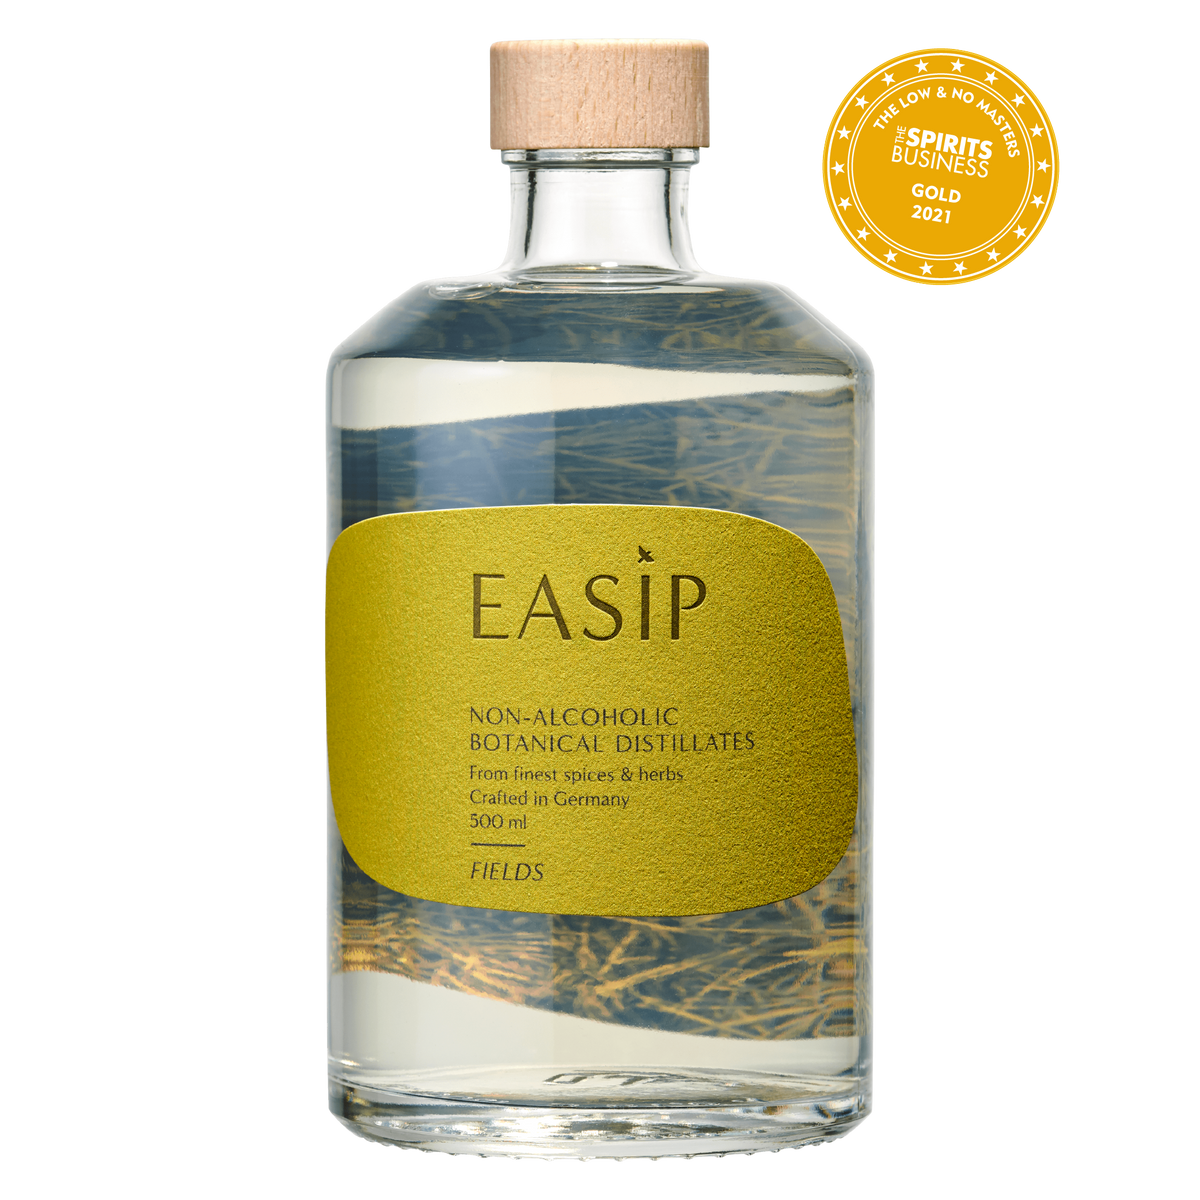 EASIP FIELDS - alkoholfreies Destillat